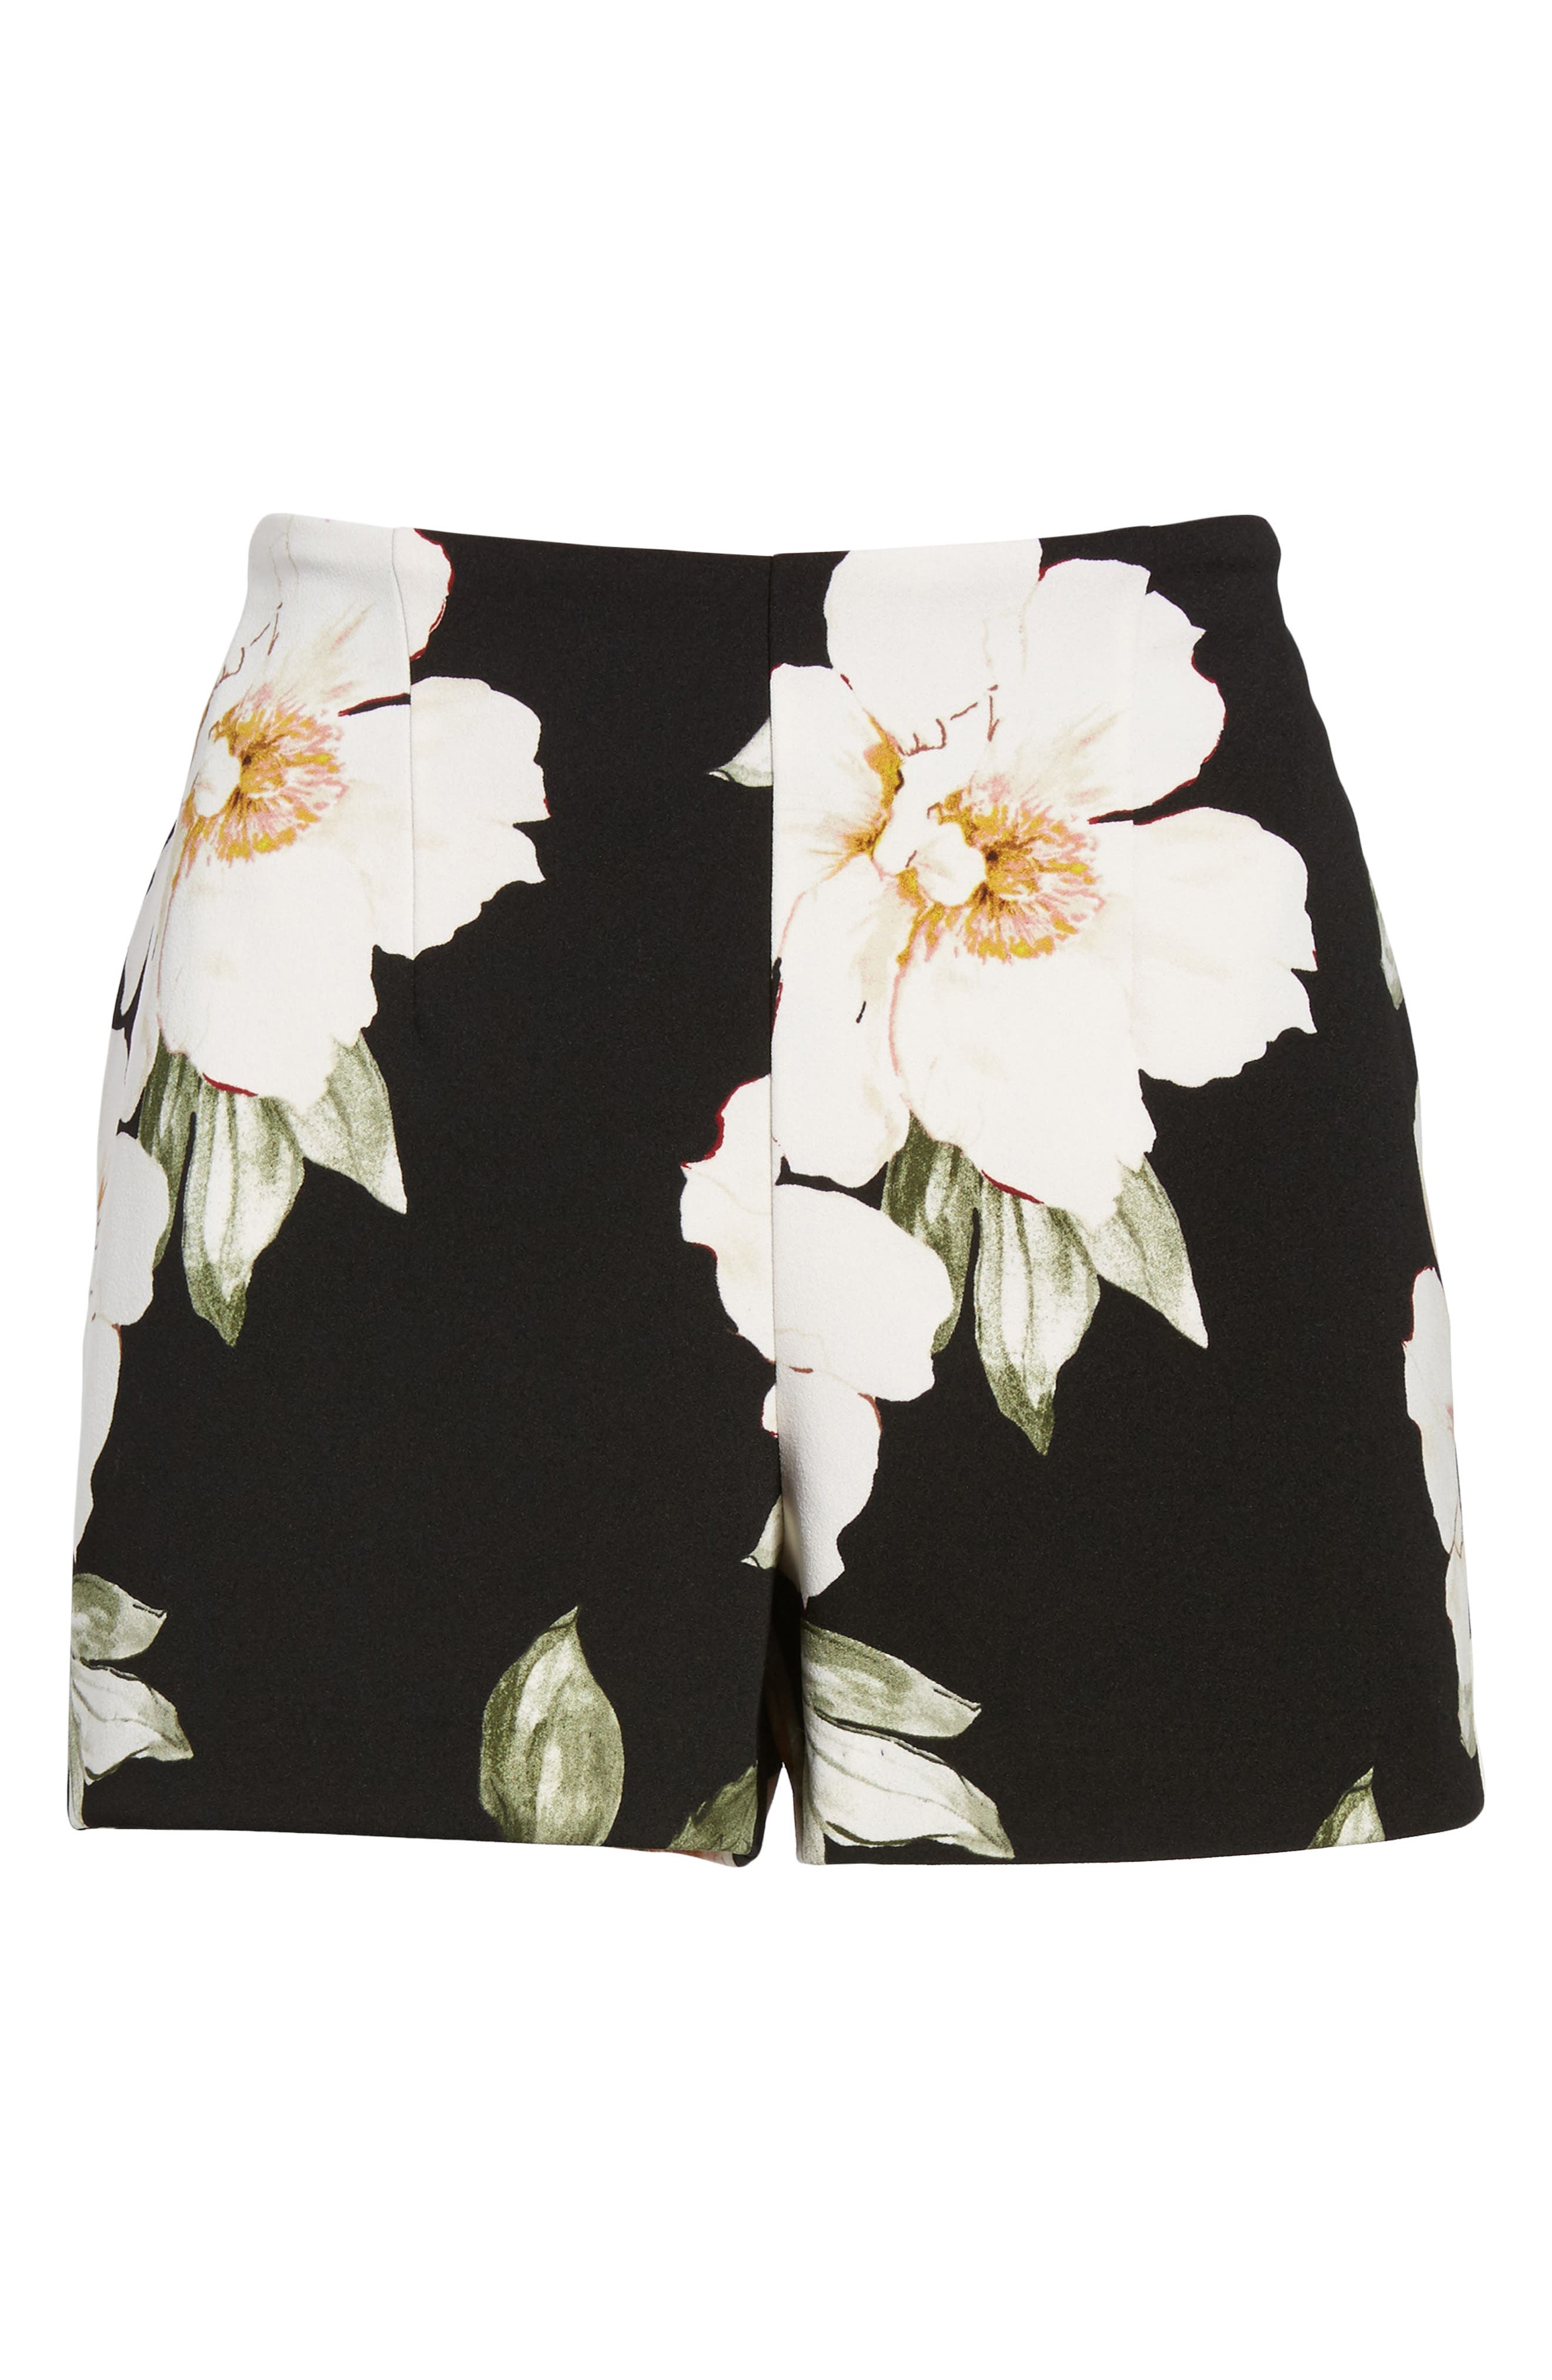 High Waist Shorts,                             Alternate thumbnail 6, color,                             Black Exploded Floral